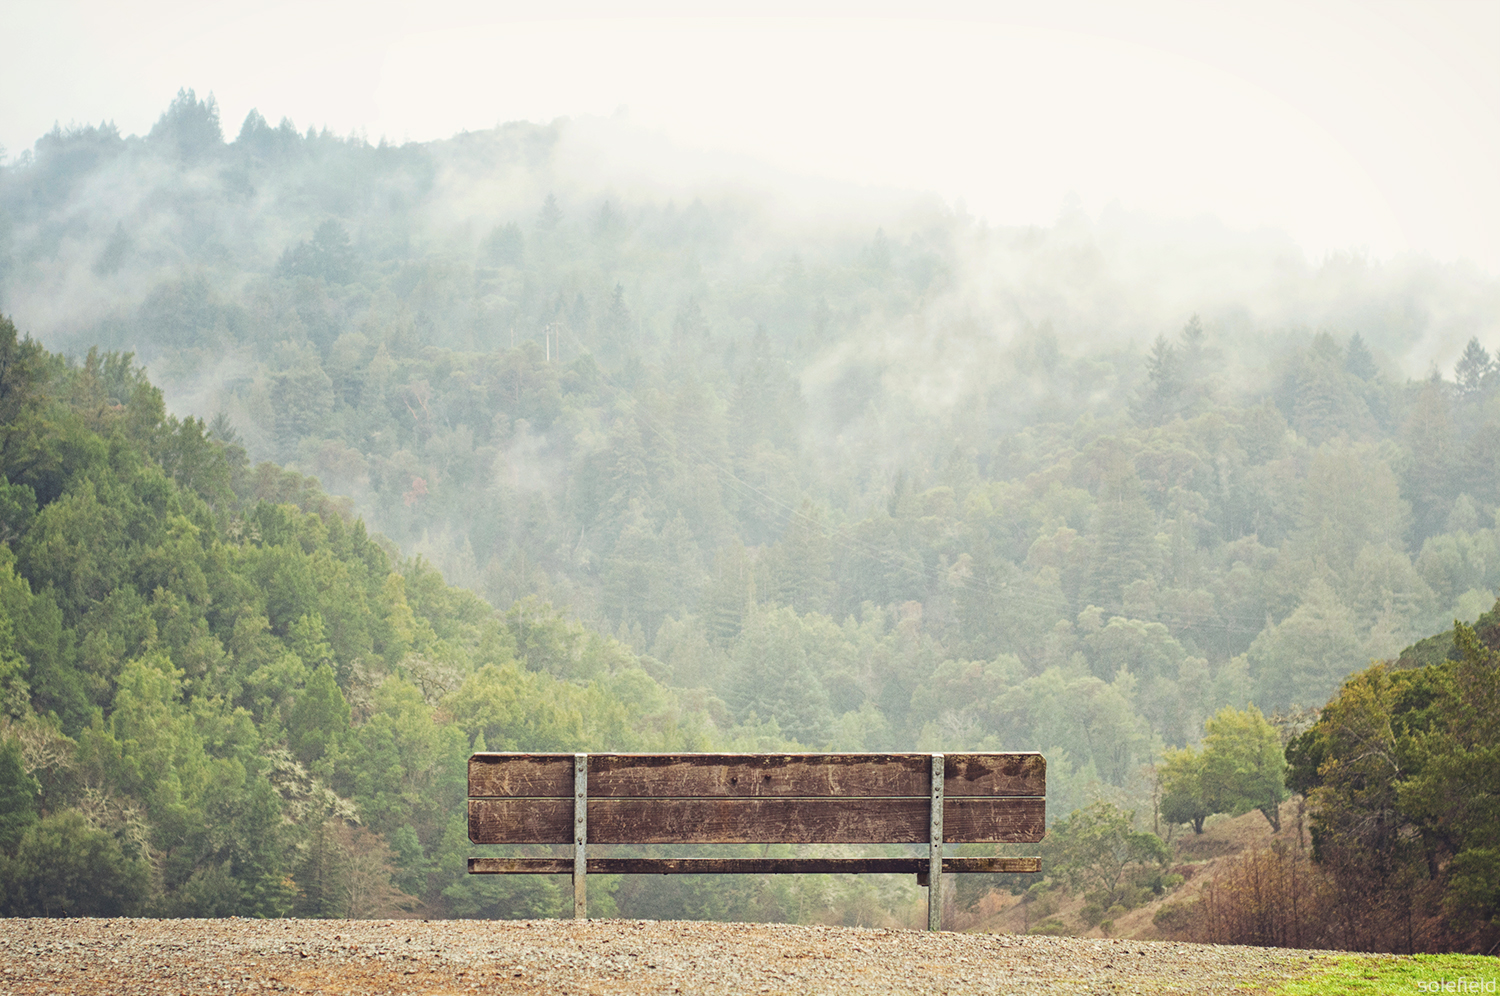 Bench in front of foggy trees